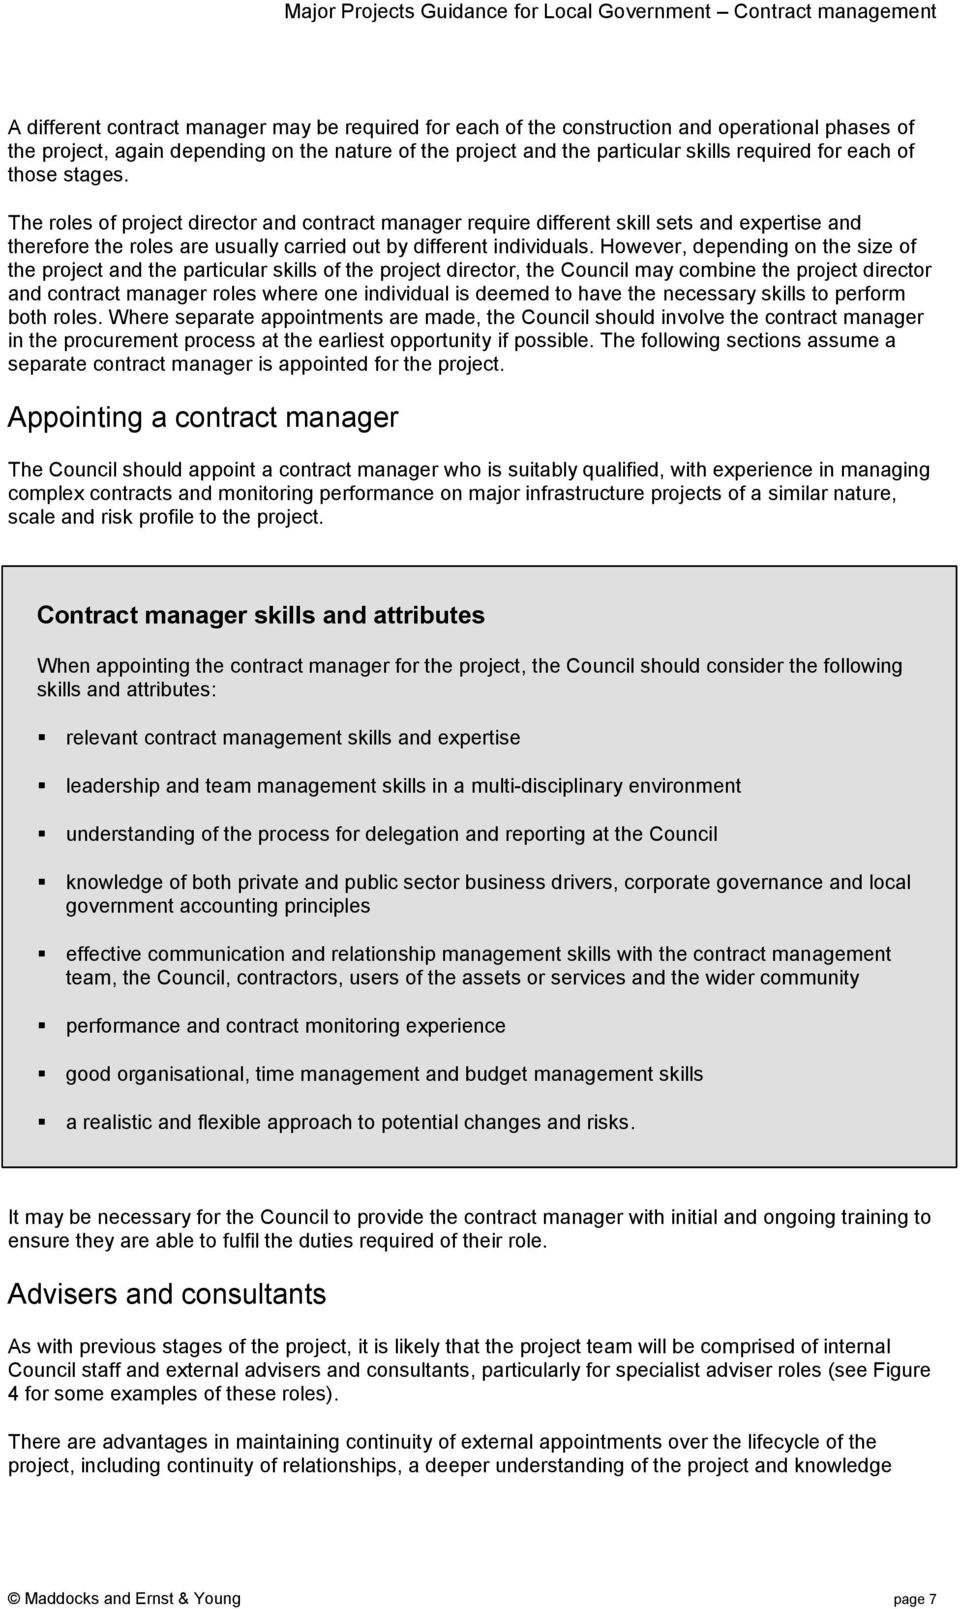 However, depending on the size of the project and the particular skills of the project director, the Council may combine the project director and contract manager roles where one individual is deemed